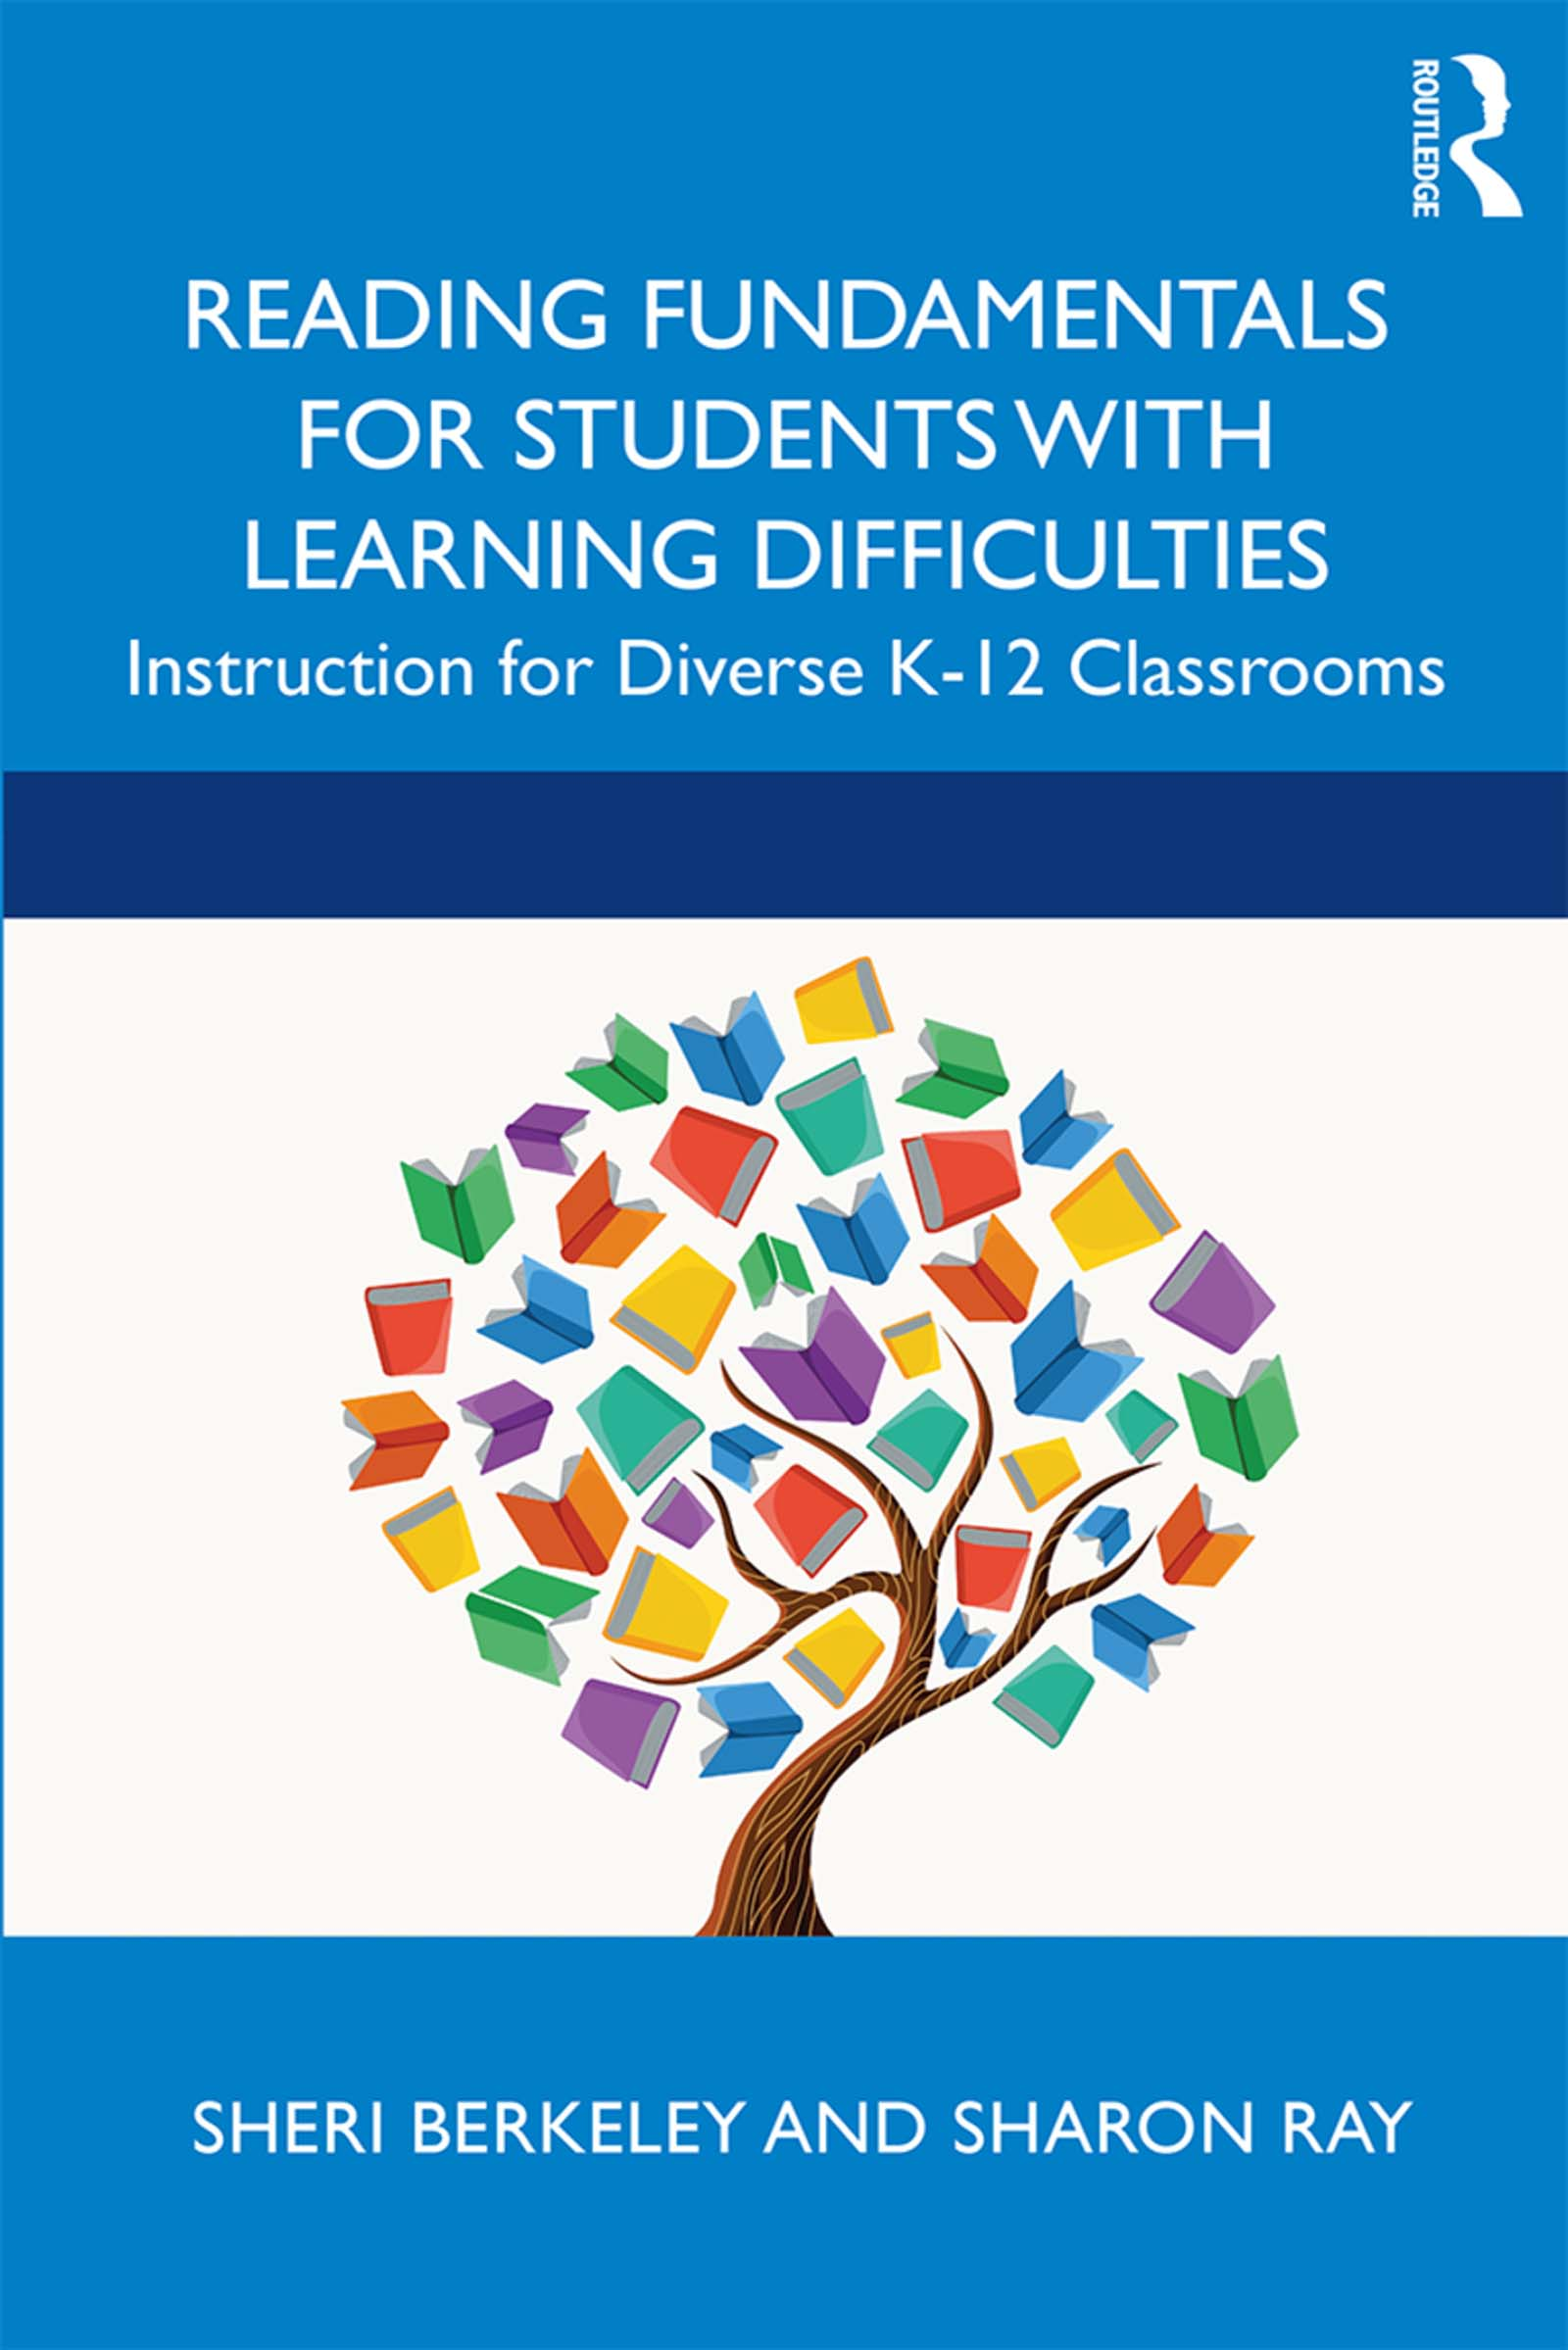 Reading Fundamentals for Students with Learning Difficulties: Instruction for Diverse K-12 Classrooms book cover